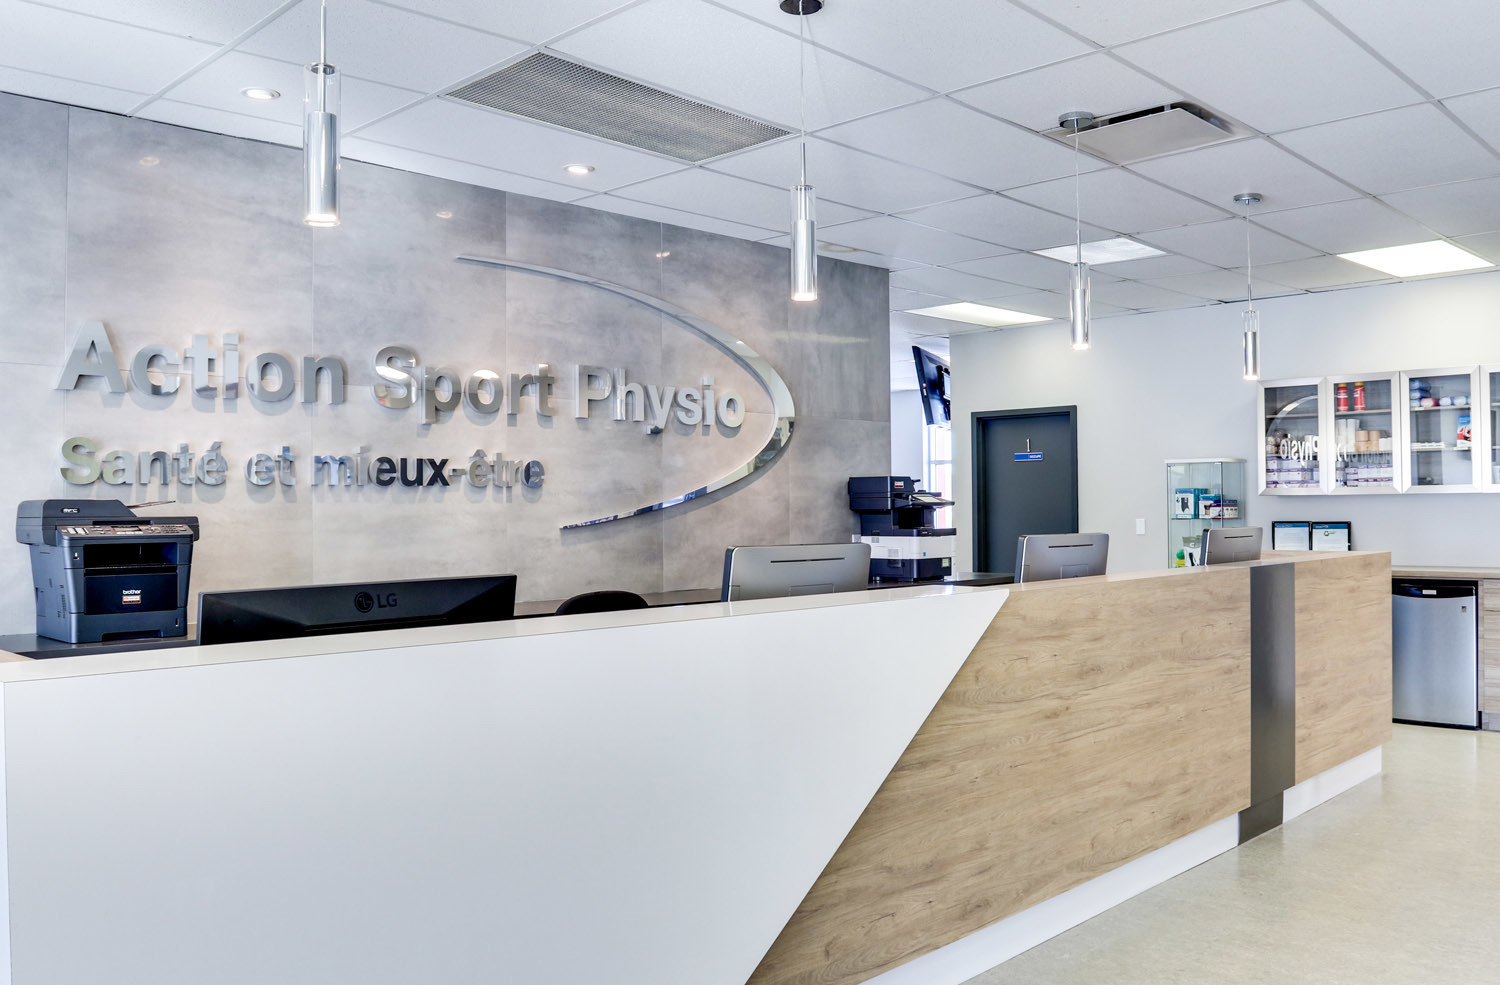 Photo de la clinique de Physiothérapie Action Sport Physio Saint-Jérôme